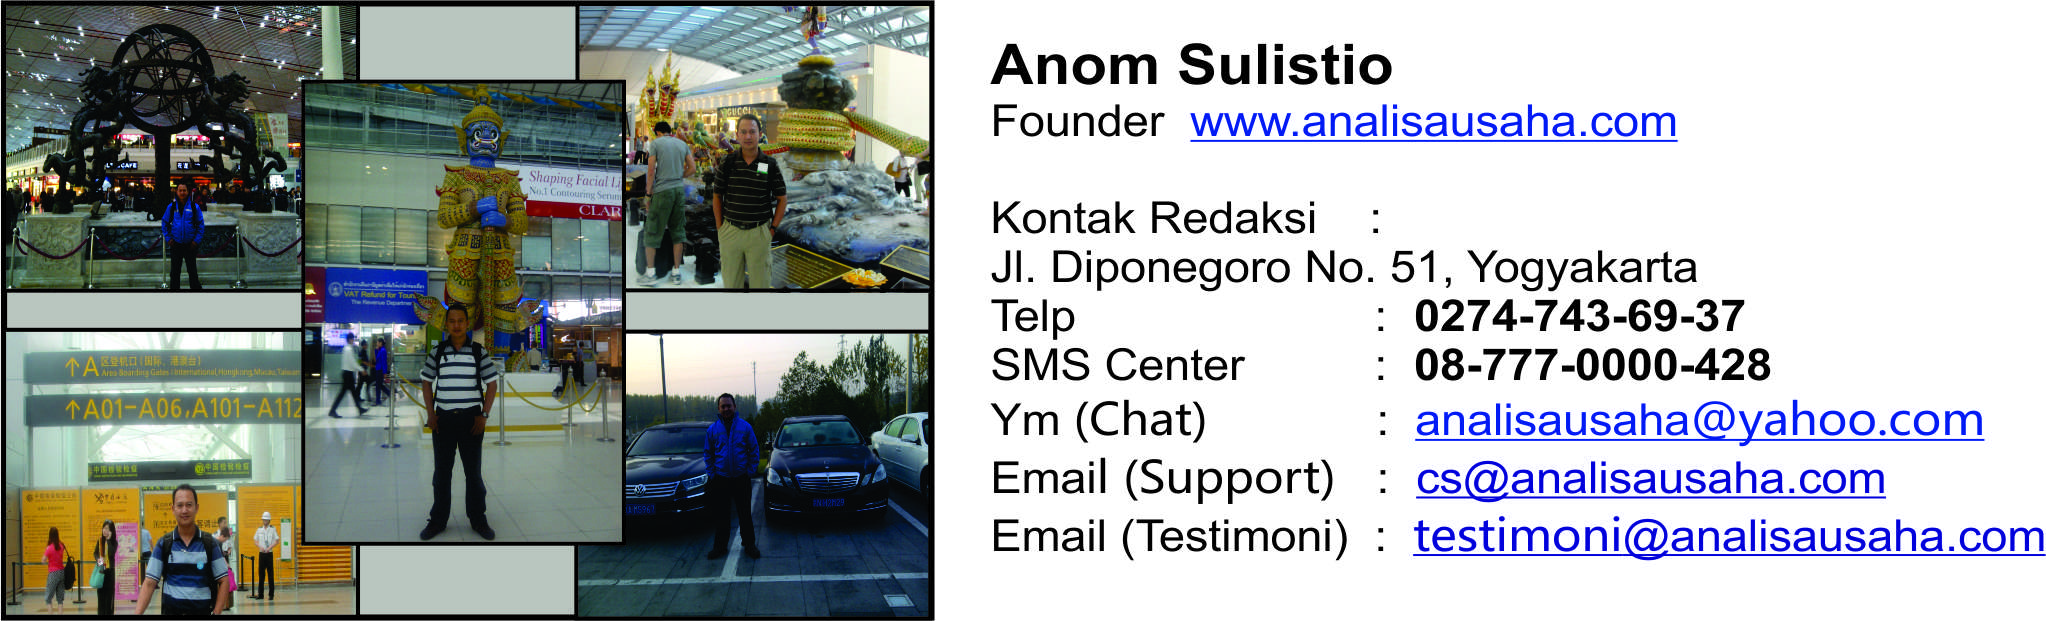 Profile Anom 3 Analisa Usaha Dealer Motor